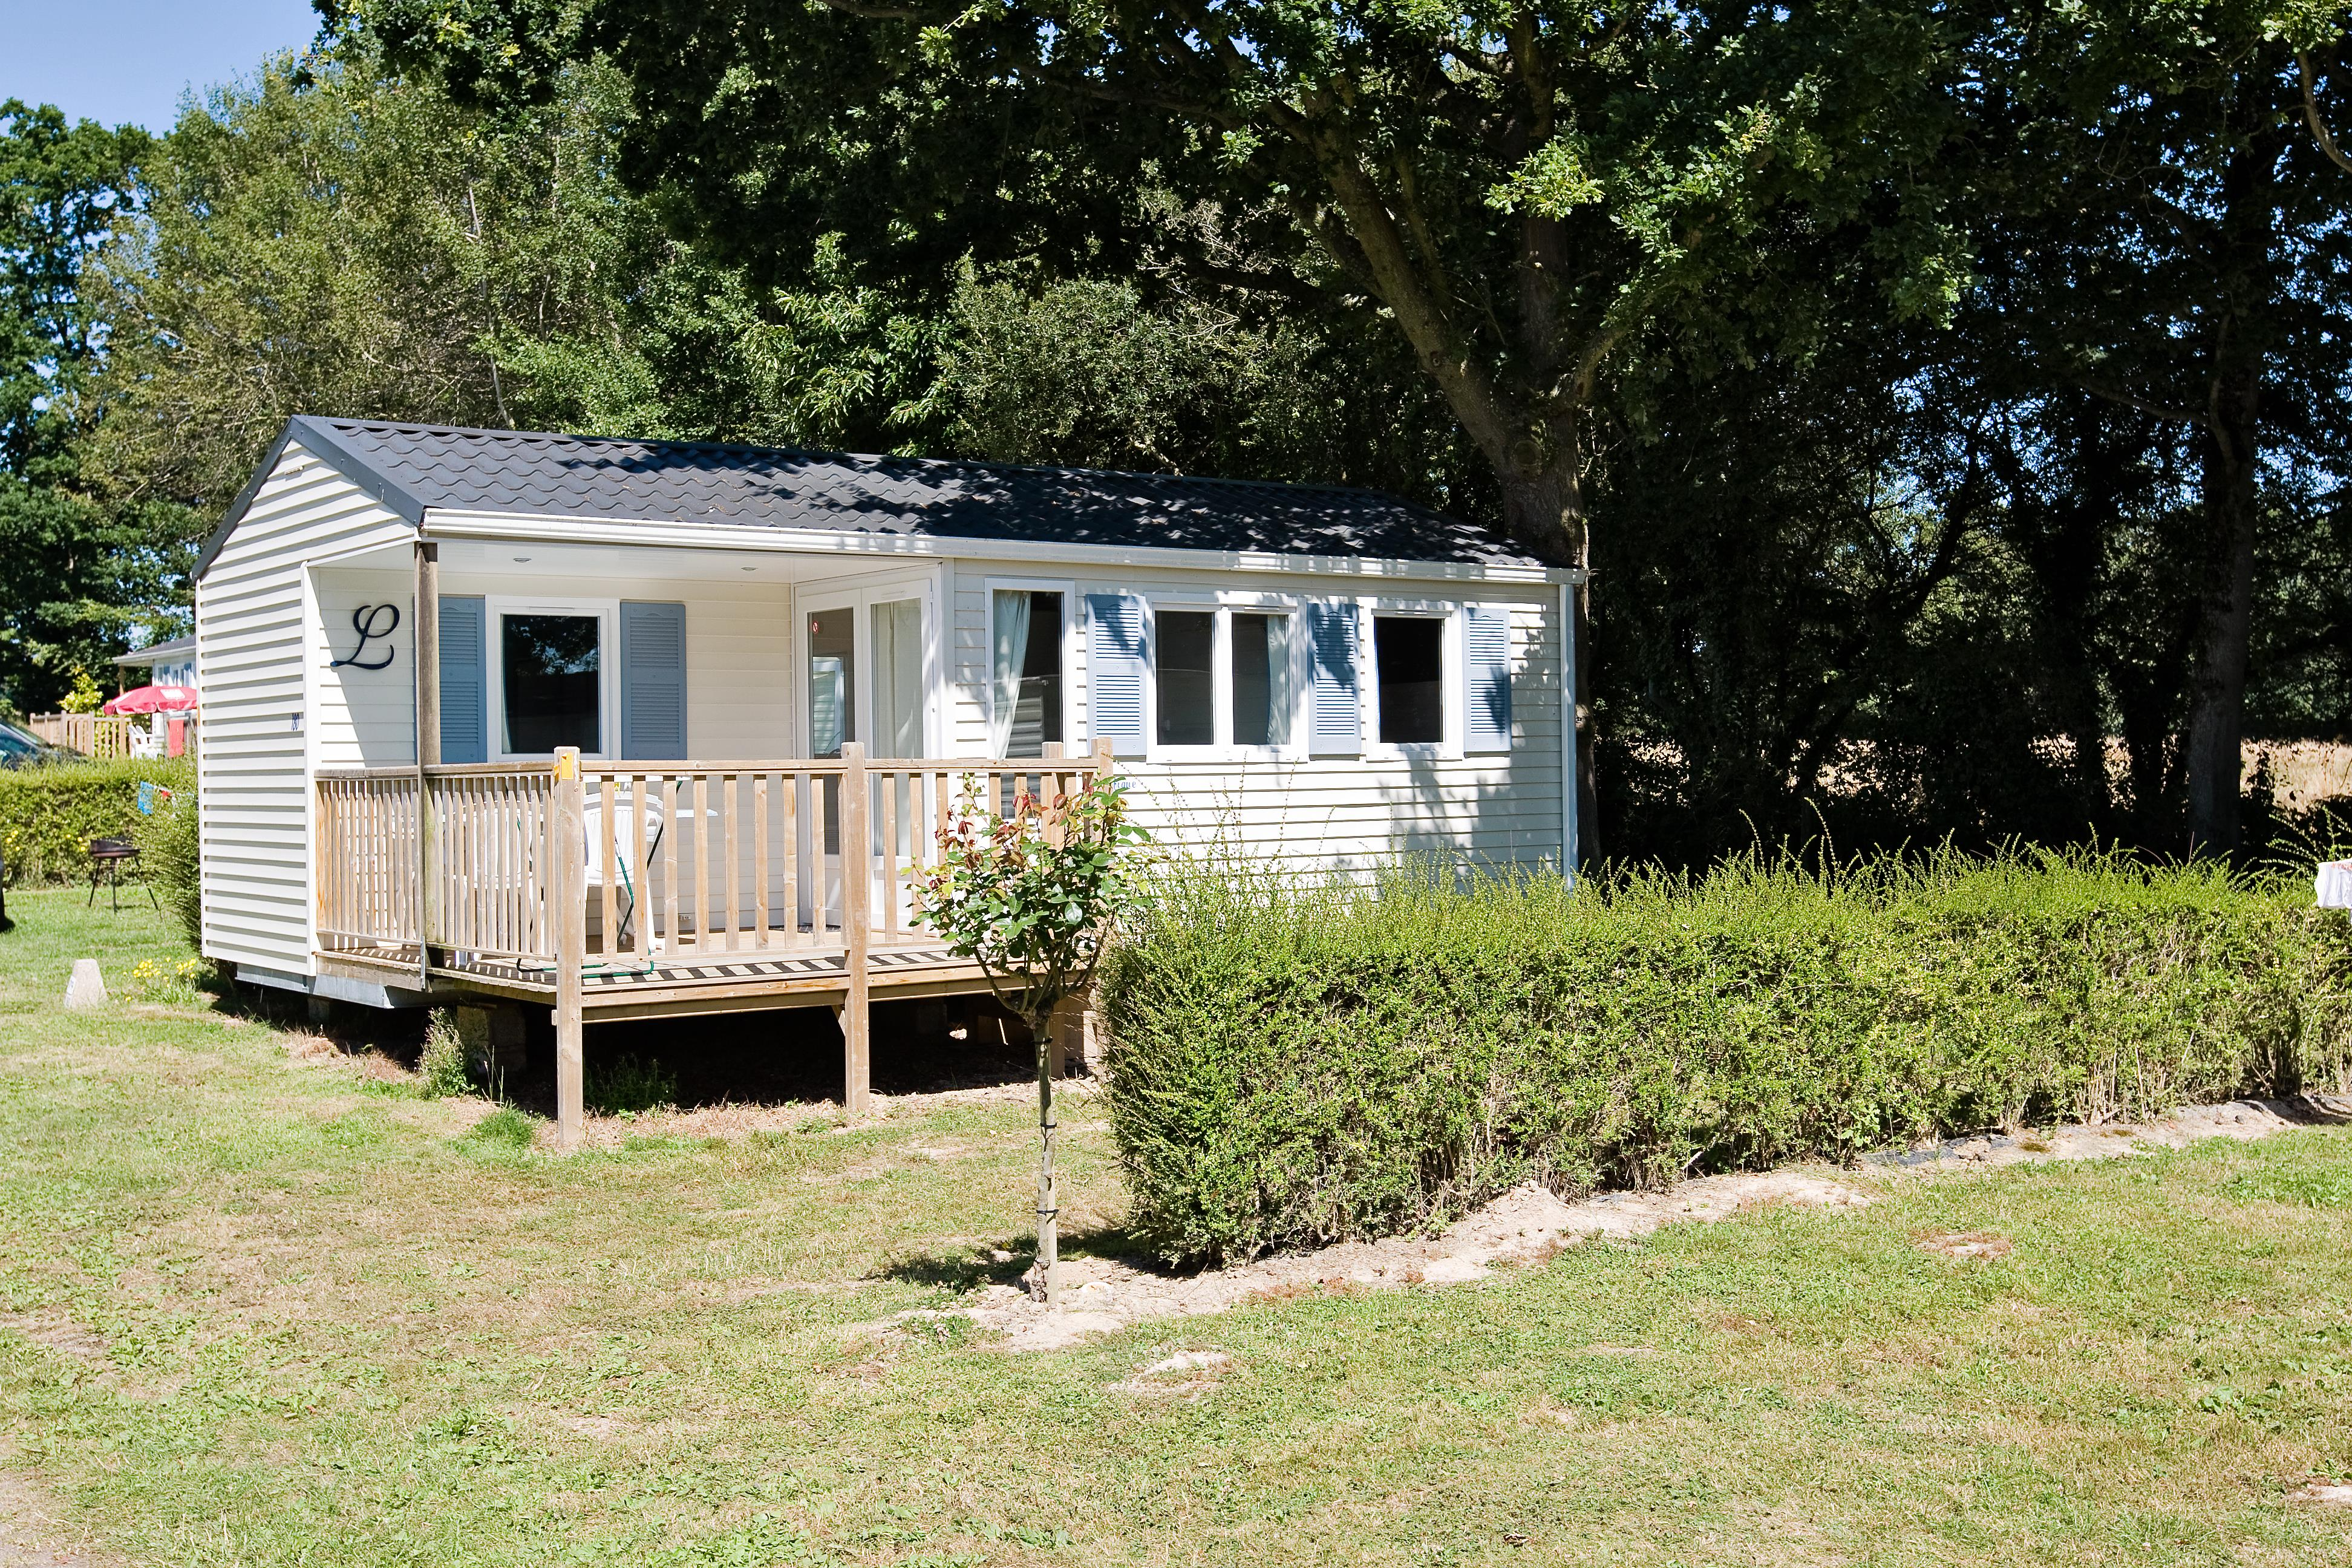 Mobil home 2 bedrooms -1 bathroom - wooden terrace -TV (French channels)